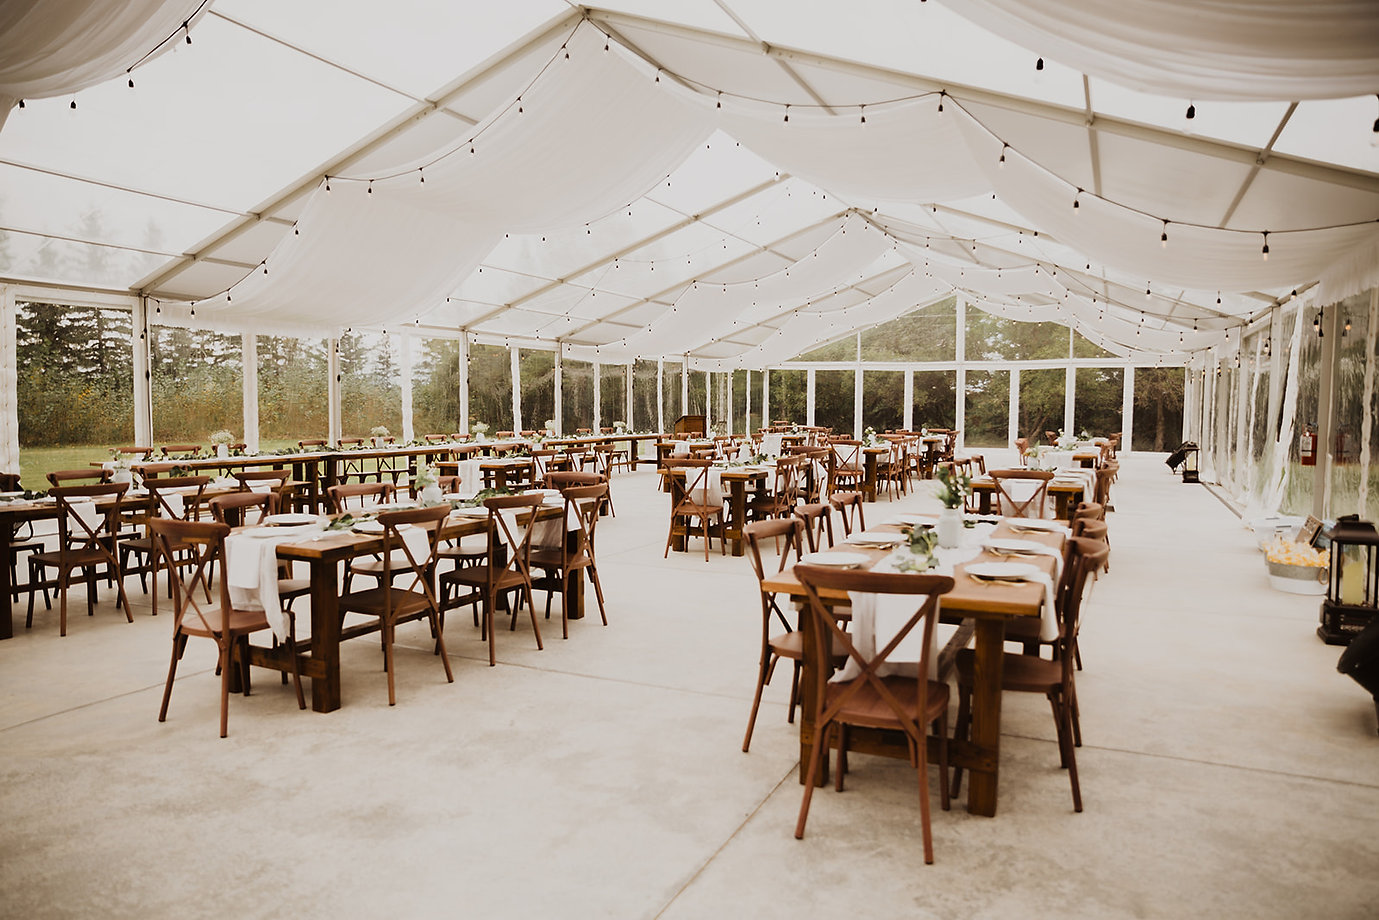 alberta tent wedding venue farmhouse tables